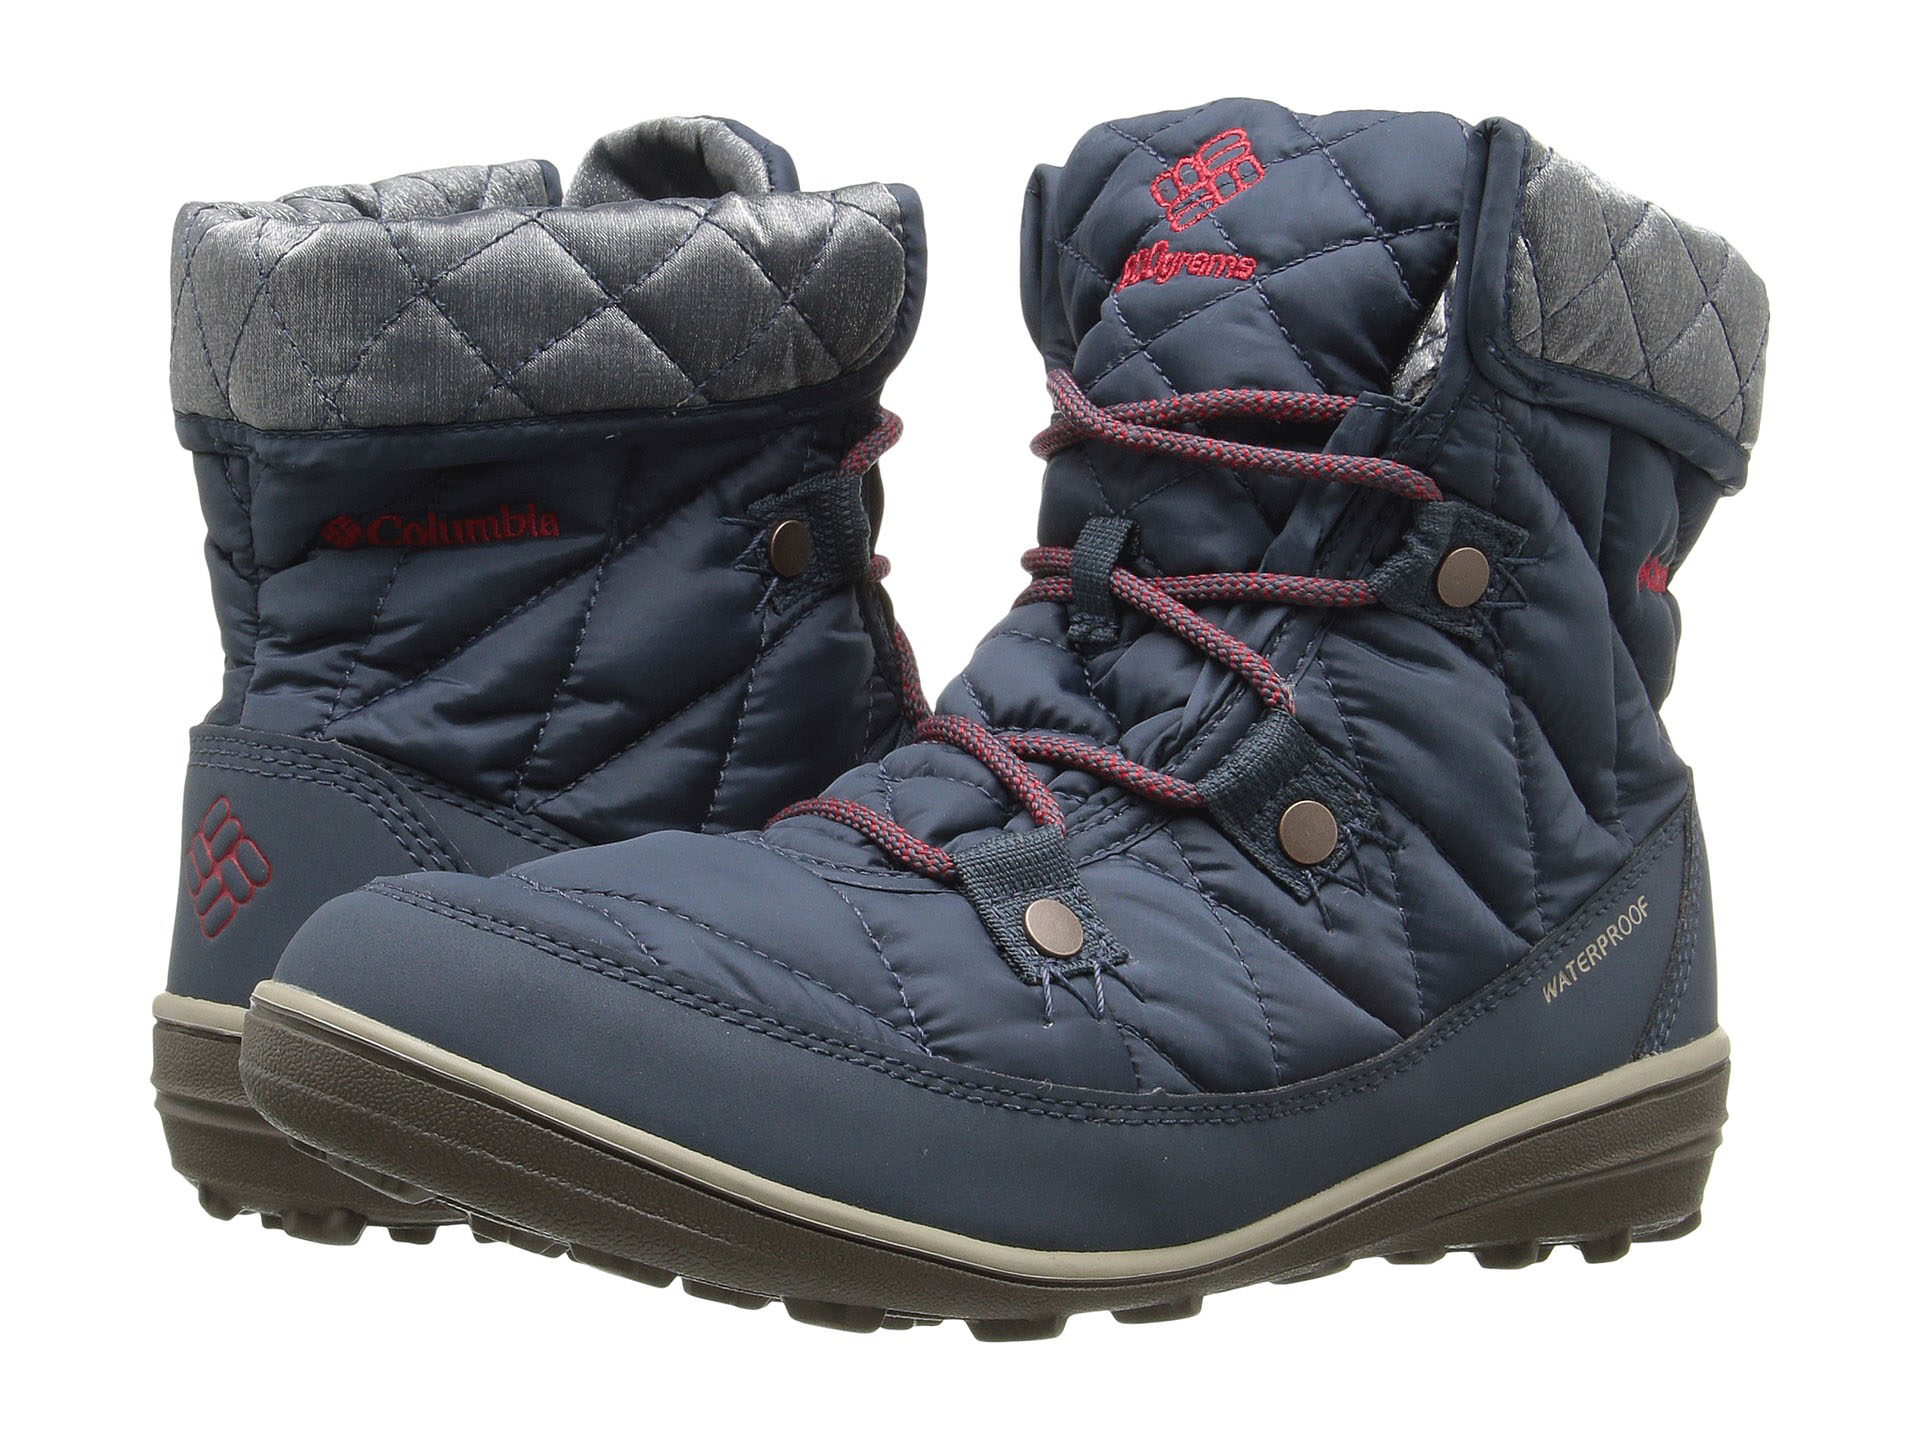 Columbia Colombia snow boots, cotton boots, cotton boots, Heavenly Shorty